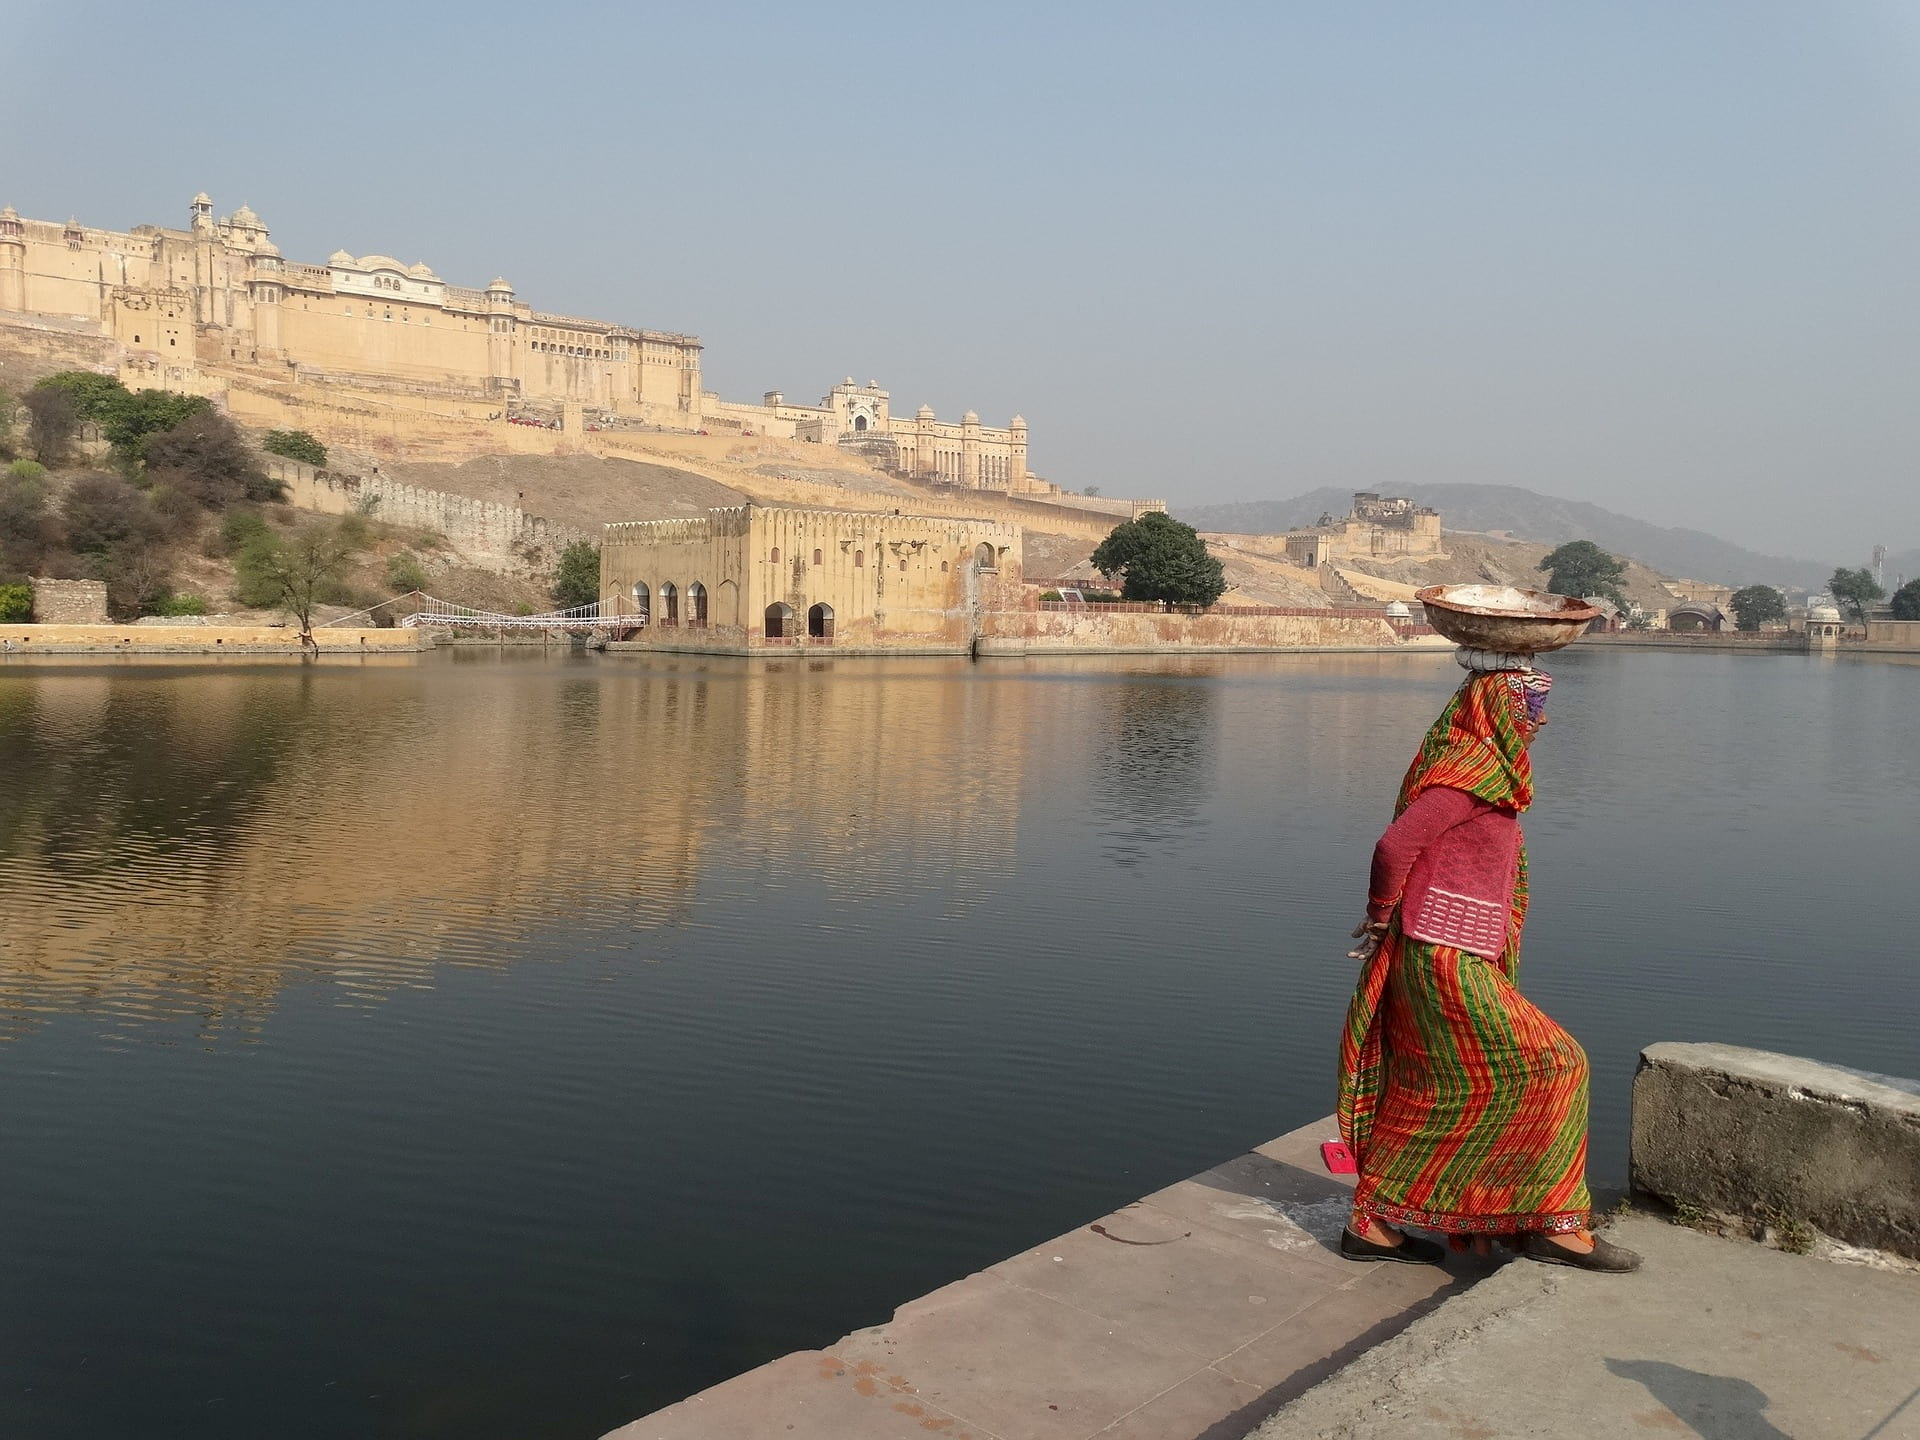 adventour - India - rajasthan - jaipur amber fort - donna tradizionale